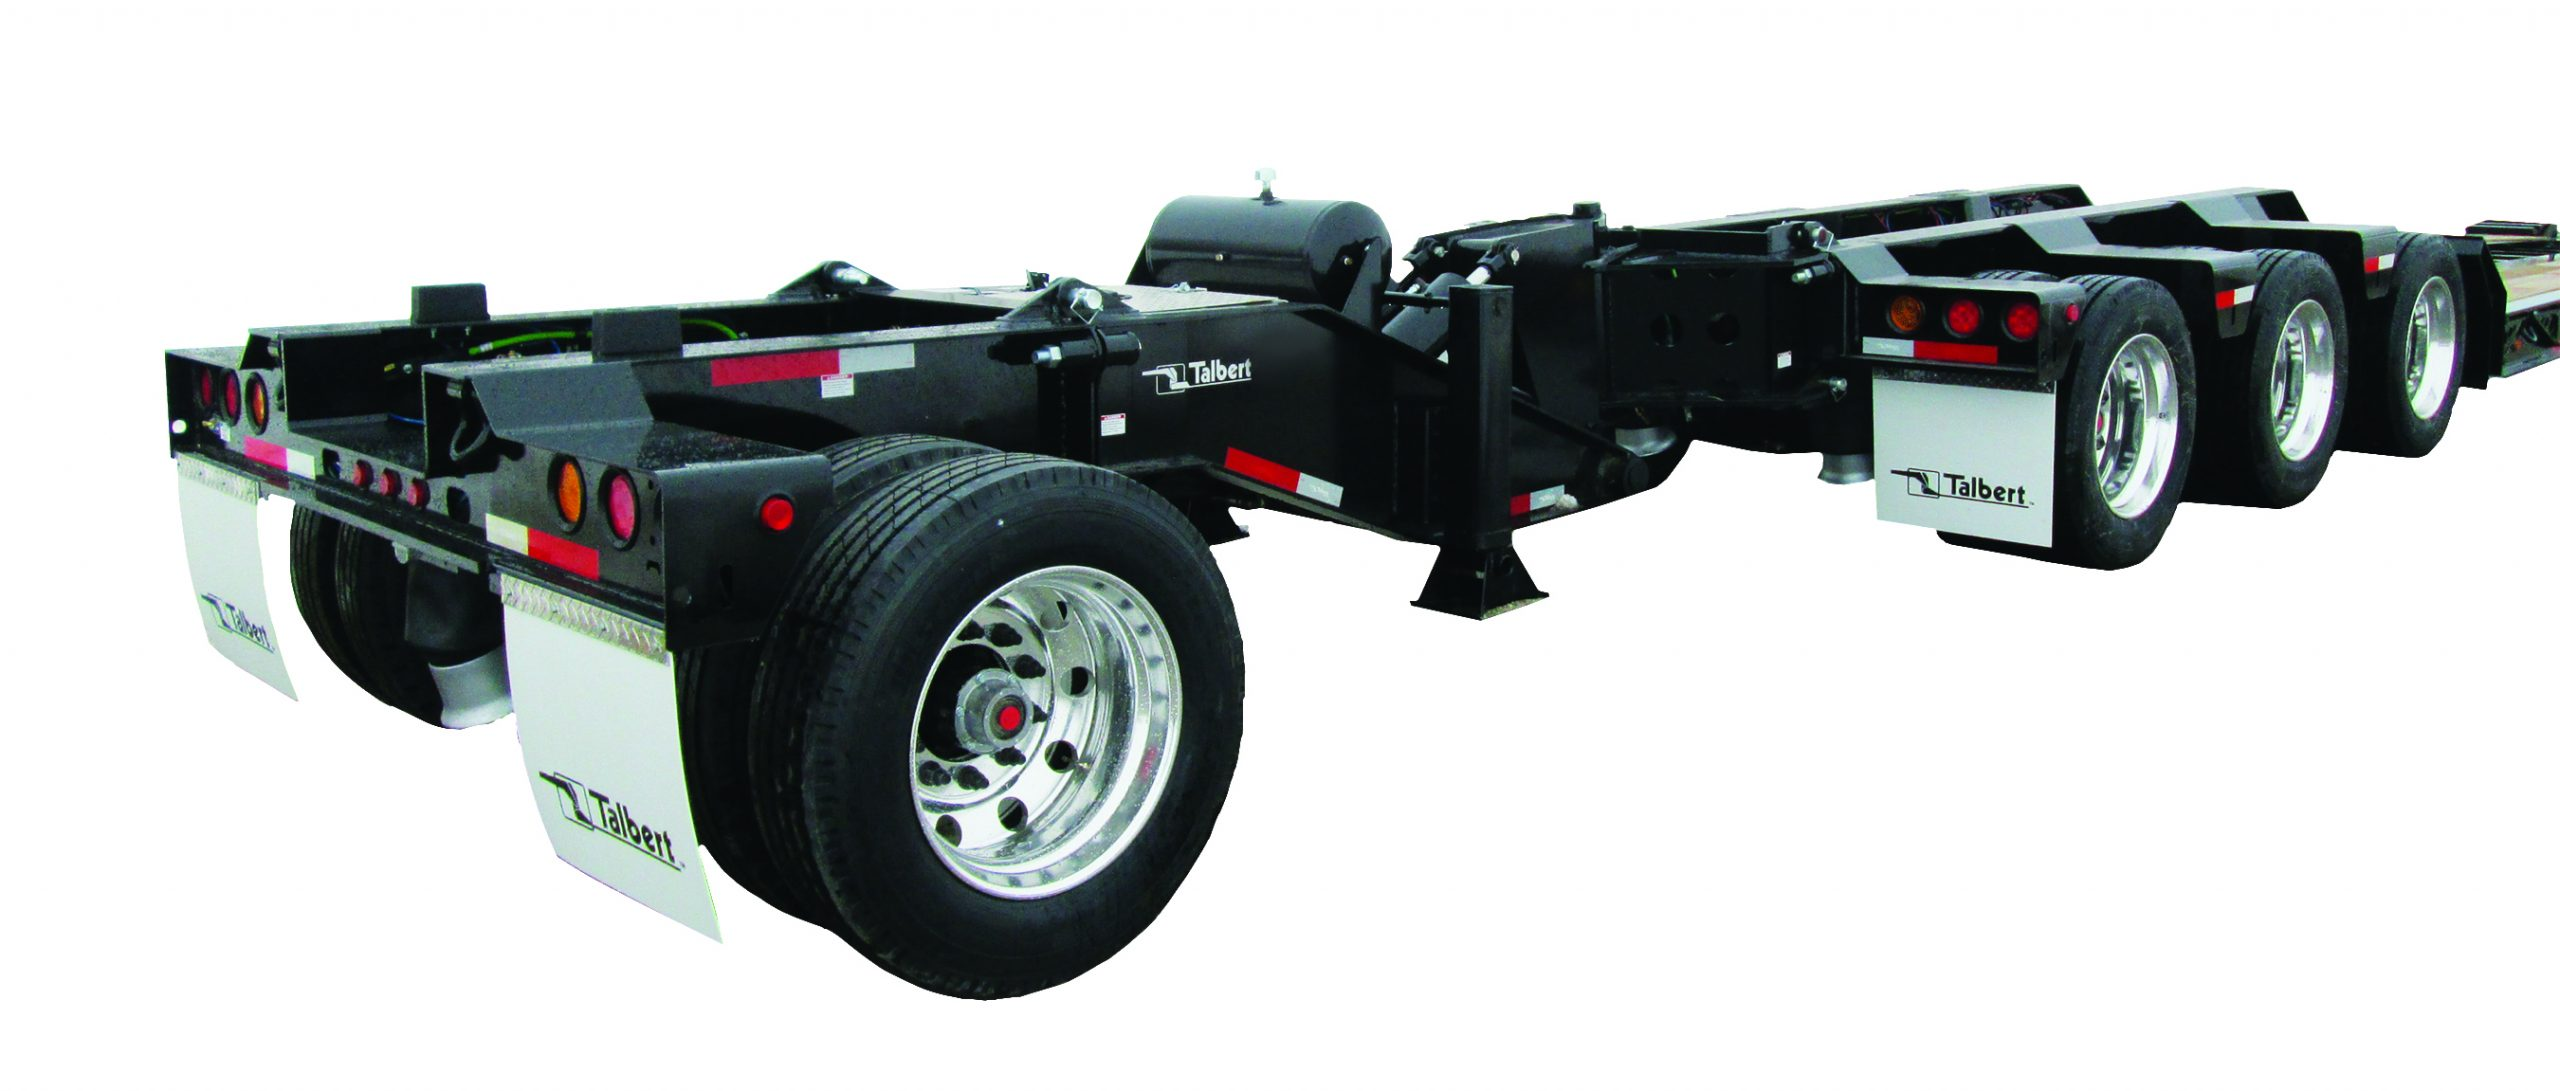 Talbert Manufacturing offers the 65SA Modular Trailer with unique design that features a flip extension to accommodate a tandem- or tri-axle jeep dolly, allowing for maximum load configurations. It can also pair with Talbert's revolutionary E2 or E3Nitro axle extension, which dampens axle movement and controls load transfer.